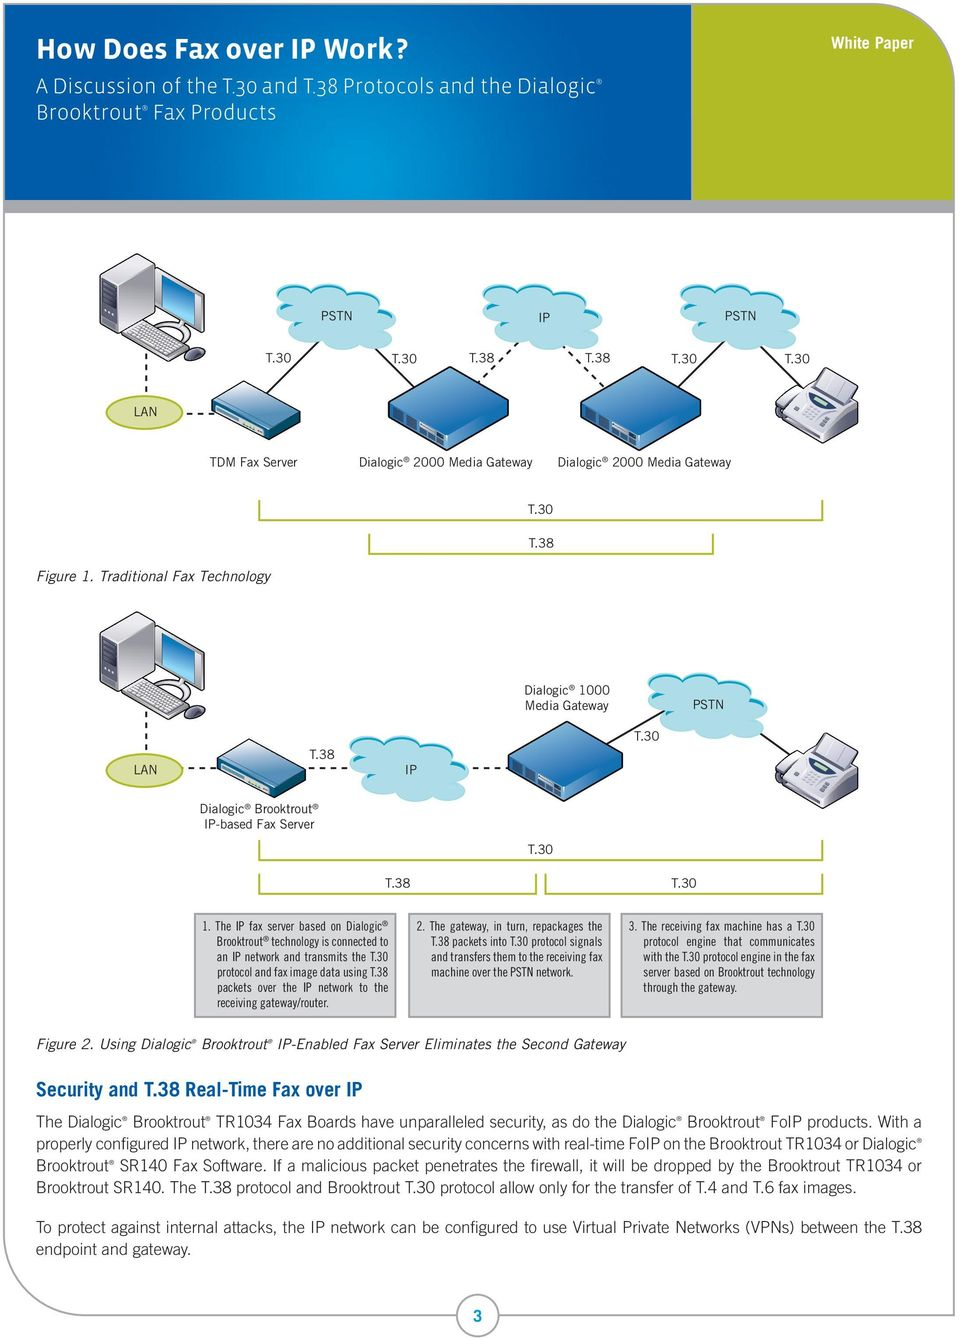 The IP fax server based on Dialogic Brooktrout technology is connected to an IP network and transmits the T.30 protocol and fax image data using T.